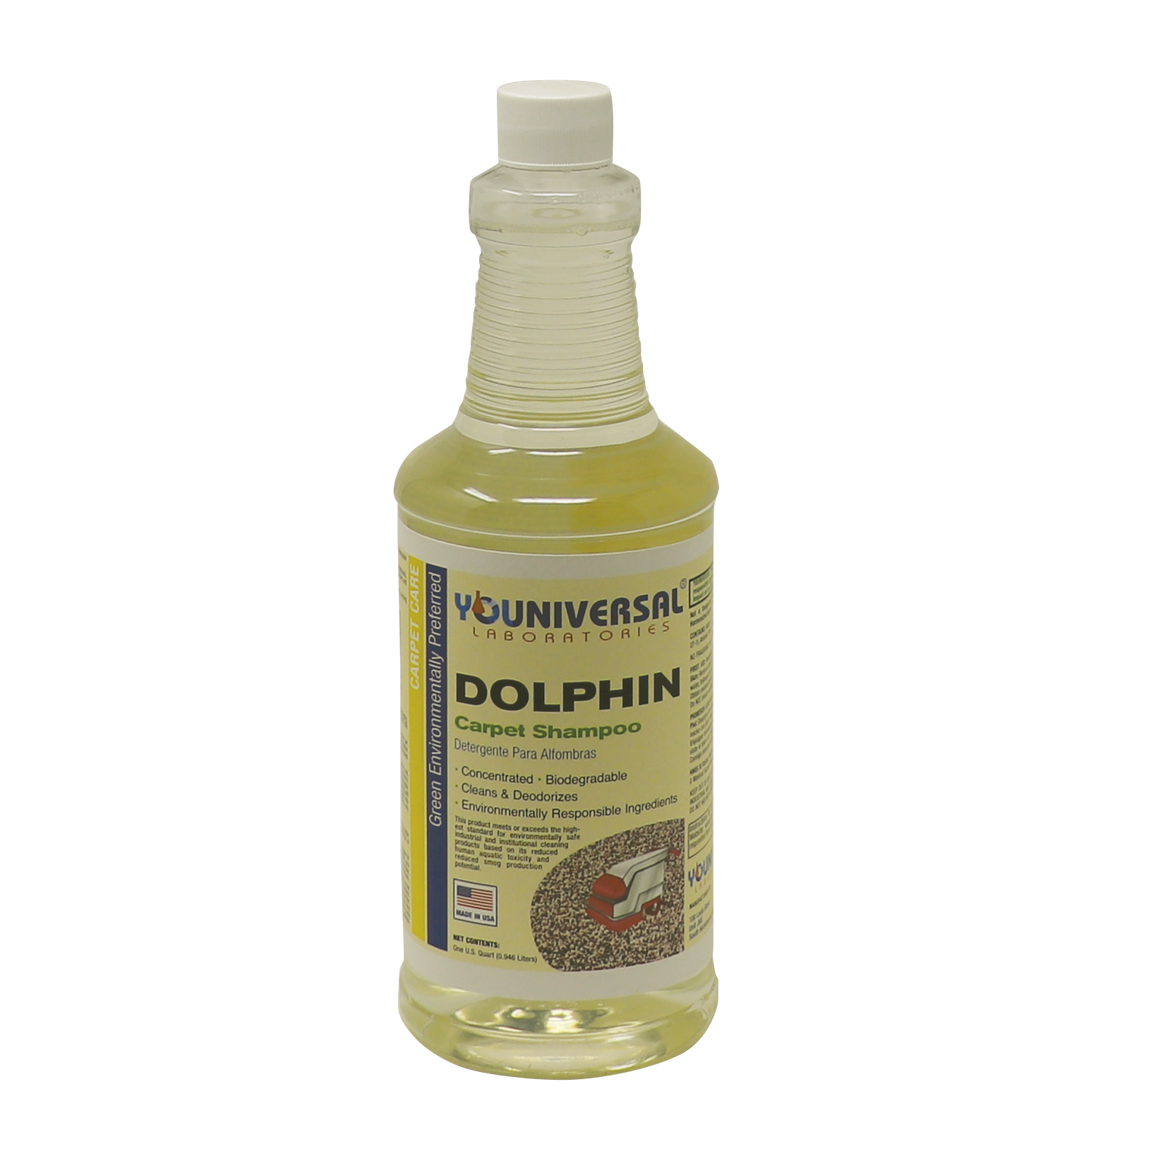 GreenFist Dolphin Carpet Shampoo 5 Gal. [ Concentrated ] Carpet Cleaner Biodegradable Makes Up to Ready To Use 640 Gallons